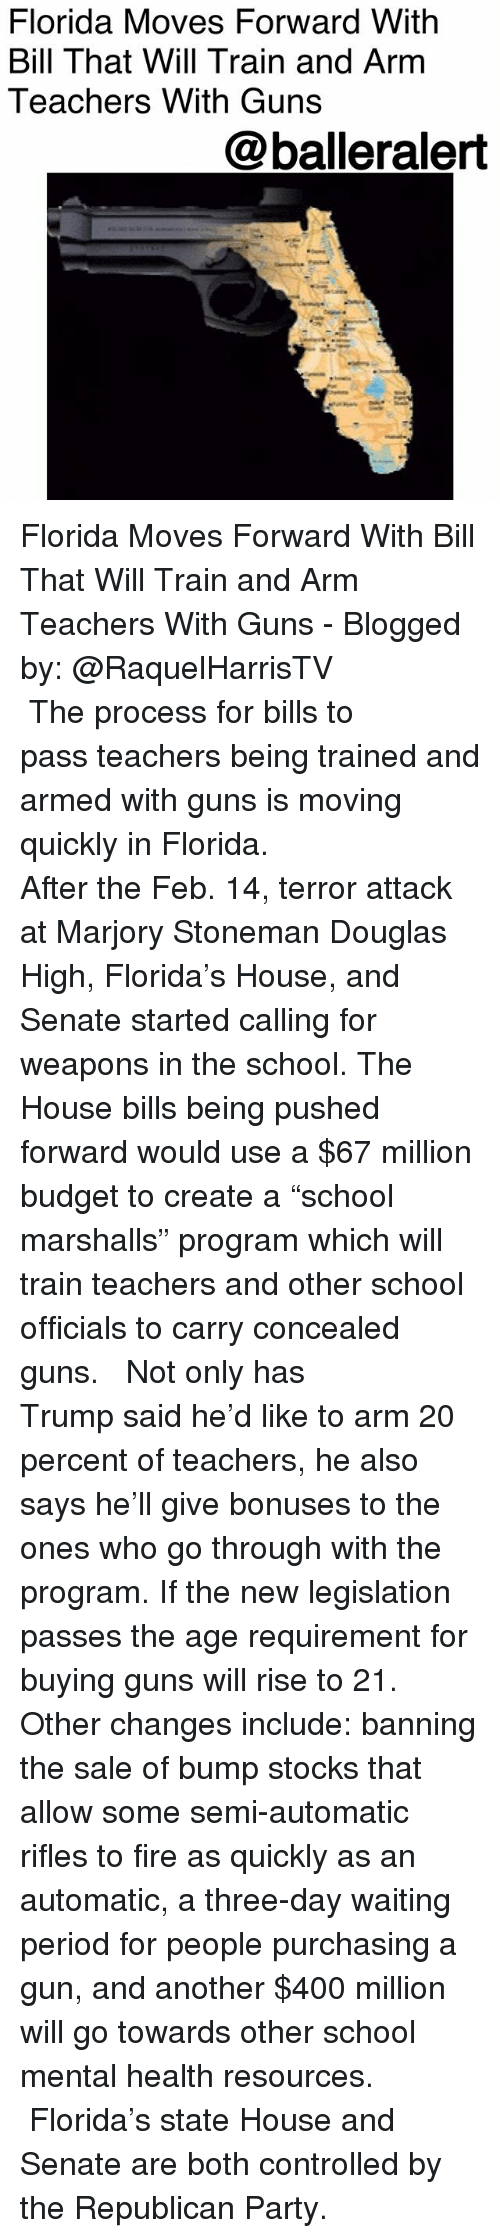 """marshalls: Florida Moves Forward With  Bill That Will Train and Arm  Teachers With Guns  @balleralert Florida Moves Forward With Bill That Will Train and Arm Teachers With Guns - Blogged by: @RaquelHarrisTV ⠀⠀⠀⠀⠀⠀⠀⠀⠀ ⠀⠀⠀⠀⠀⠀⠀⠀⠀ The process for bills to pass teachers being trained and armed with guns is moving quickly in Florida. ⠀⠀⠀⠀⠀⠀⠀⠀⠀ ⠀⠀⠀⠀⠀⠀⠀⠀⠀ After the Feb. 14, terror attack at Marjory Stoneman Douglas High, Florida's House, and Senate started calling for weapons in the school. The House bills being pushed forward would use a $67 million budget to create a """"school marshalls"""" program which will train teachers and other school officials to carry concealed guns. ⠀⠀⠀⠀⠀⠀⠀⠀⠀ ⠀⠀⠀⠀⠀⠀⠀⠀⠀ Not only has Trump said he'd like to arm 20 percent of teachers, he also says he'll give bonuses to the ones who go through with the program. If the new legislation passes the age requirement for buying guns will rise to 21. Other changes include: banning the sale of bump stocks that allow some semi-automatic rifles to fire as quickly as an automatic, a three-day waiting period for people purchasing a gun, and another $400 million will go towards other school mental health resources. ⠀⠀⠀⠀⠀⠀⠀⠀⠀ ⠀⠀⠀⠀⠀⠀⠀⠀⠀ Florida's state House and Senate are both controlled by the Republican Party."""